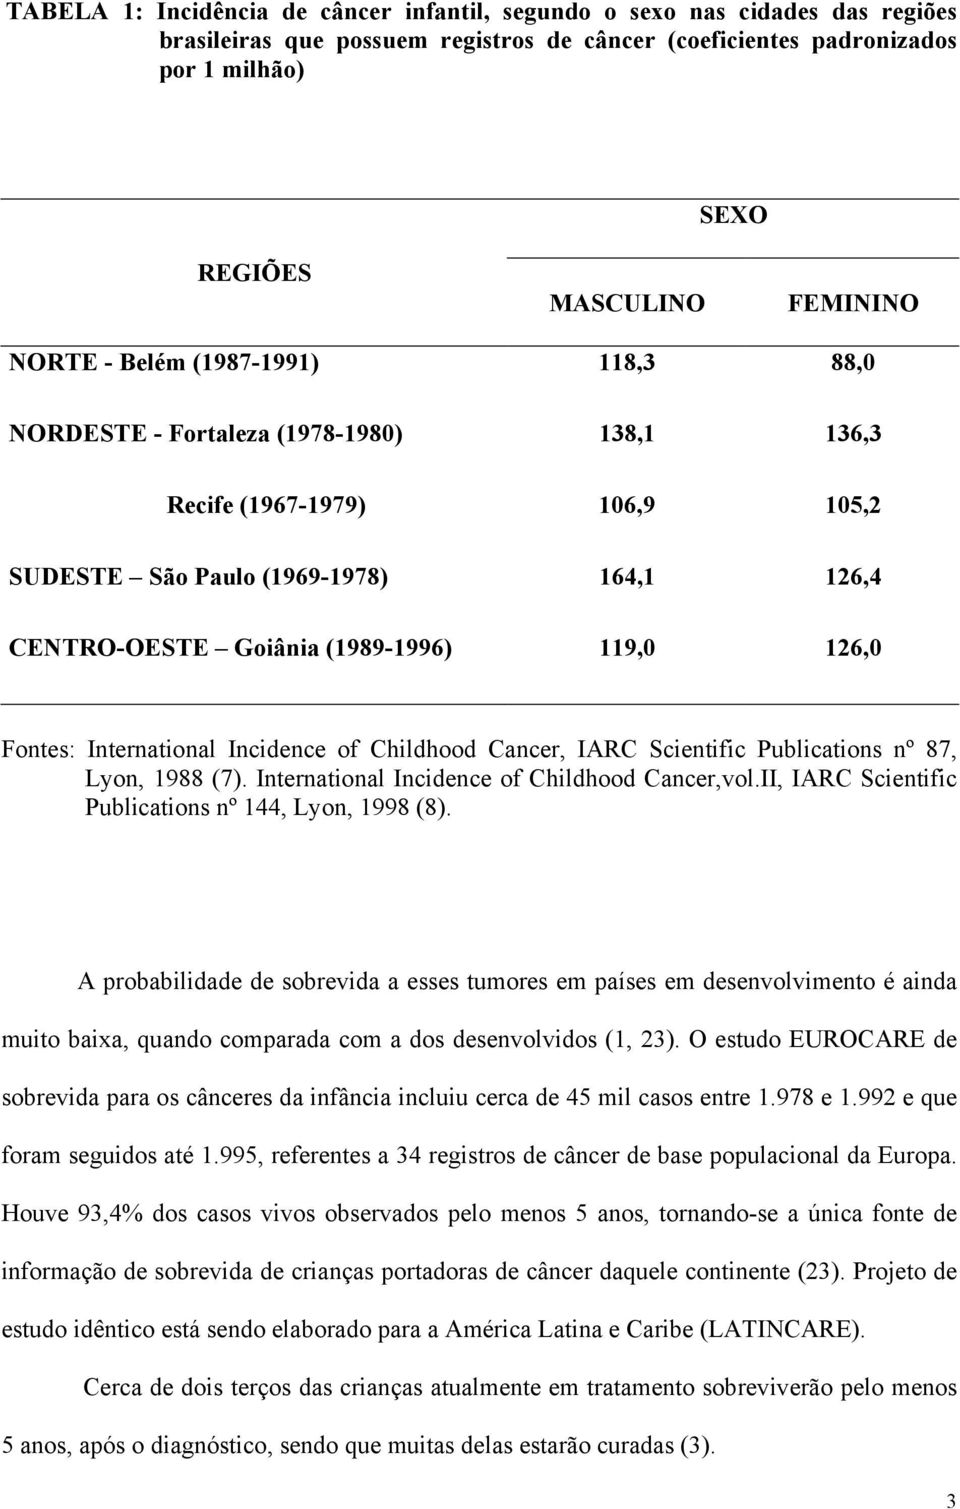 Fontes: International Incidence of Childhood Cancer, IARC Scientific Publications nº 87, Lyon, 1988 (7). International Incidence of Childhood Cancer,vol.